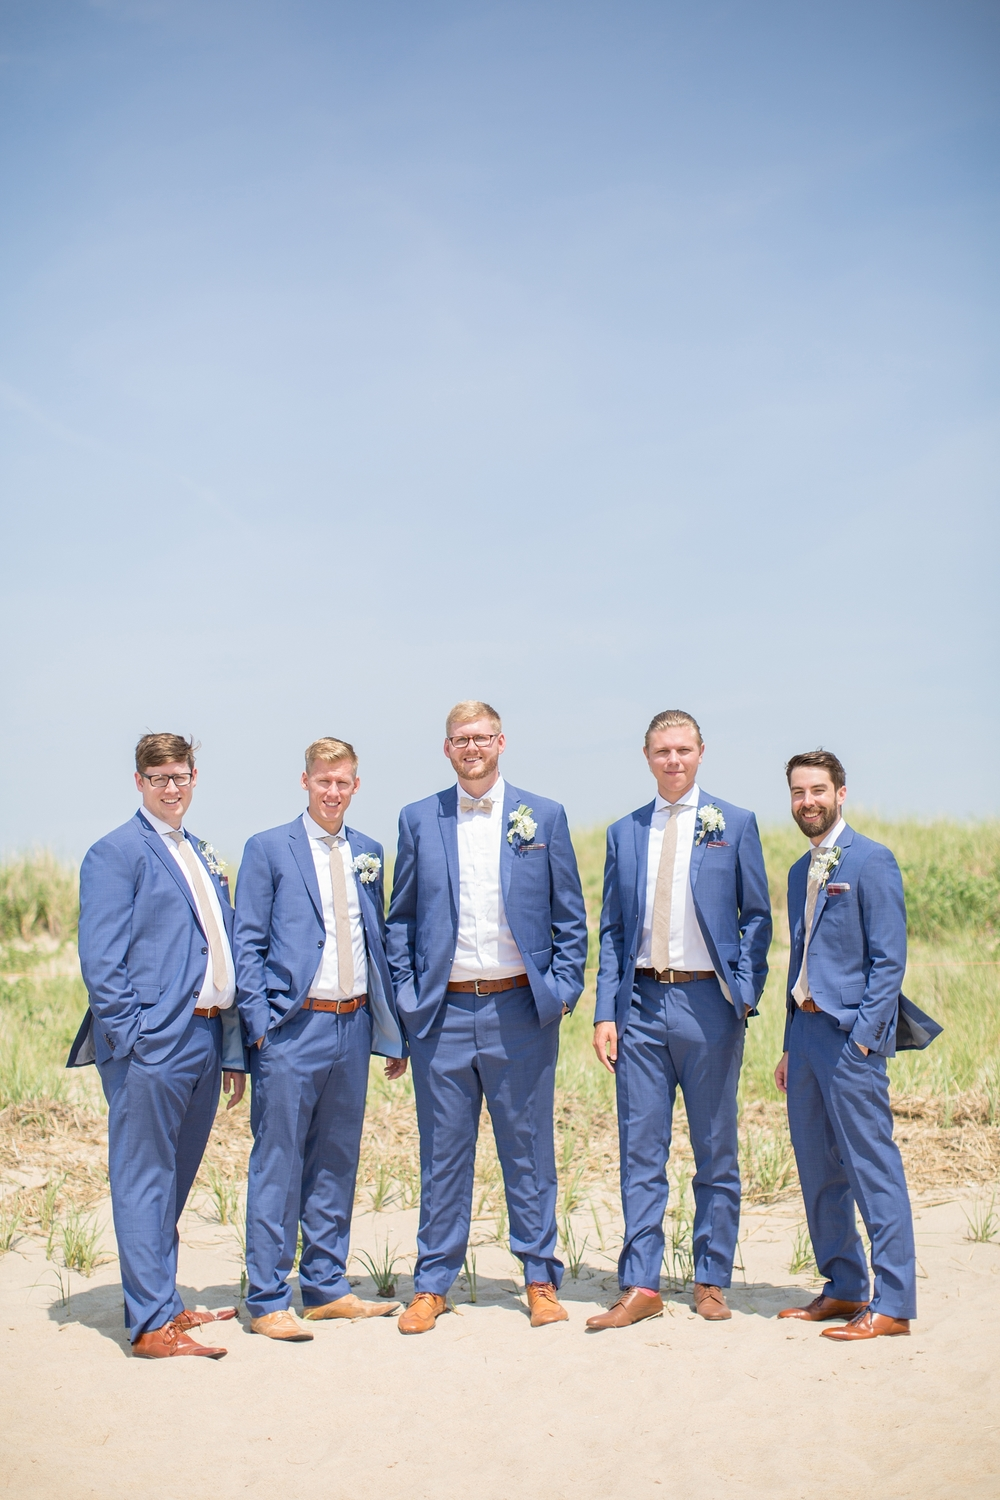 Goodman 4-Bridal Party-348_anna grace photography wellfleet cape cod massachusetts destination wedding photographer Chequessett Yacht and Country Club wedding photo.jpg